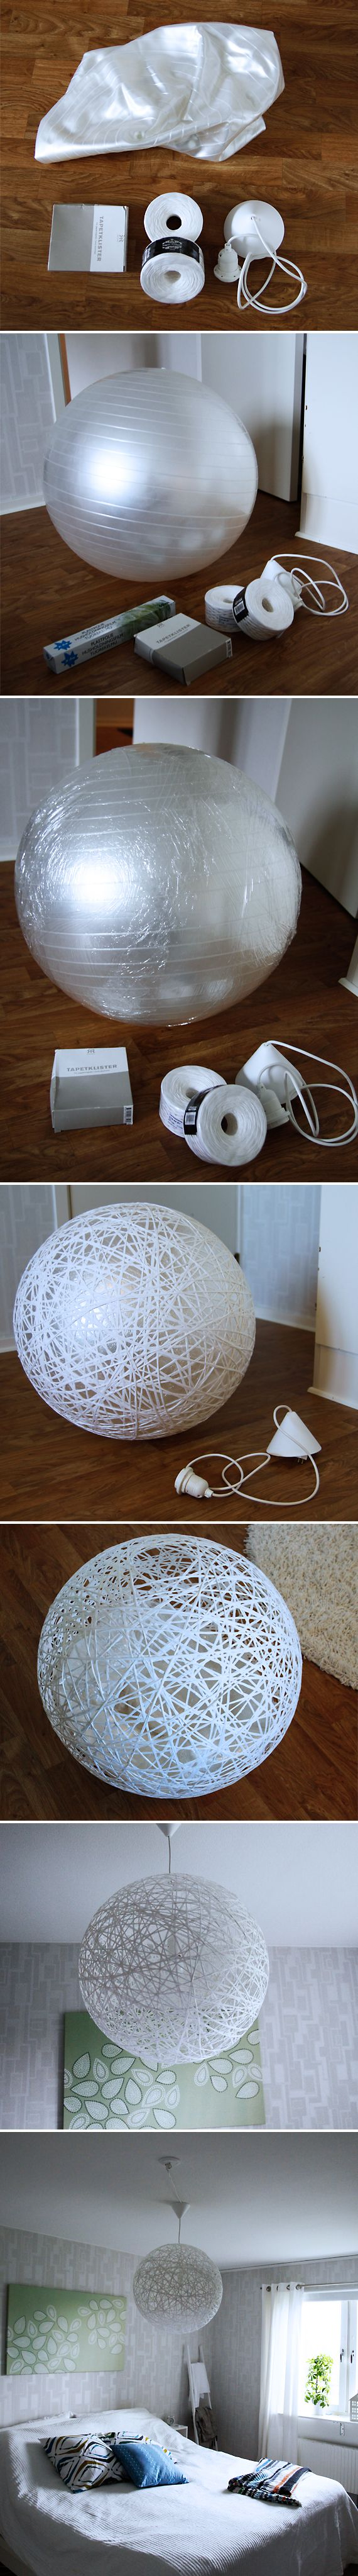 DIY dorm room project! Yesss.